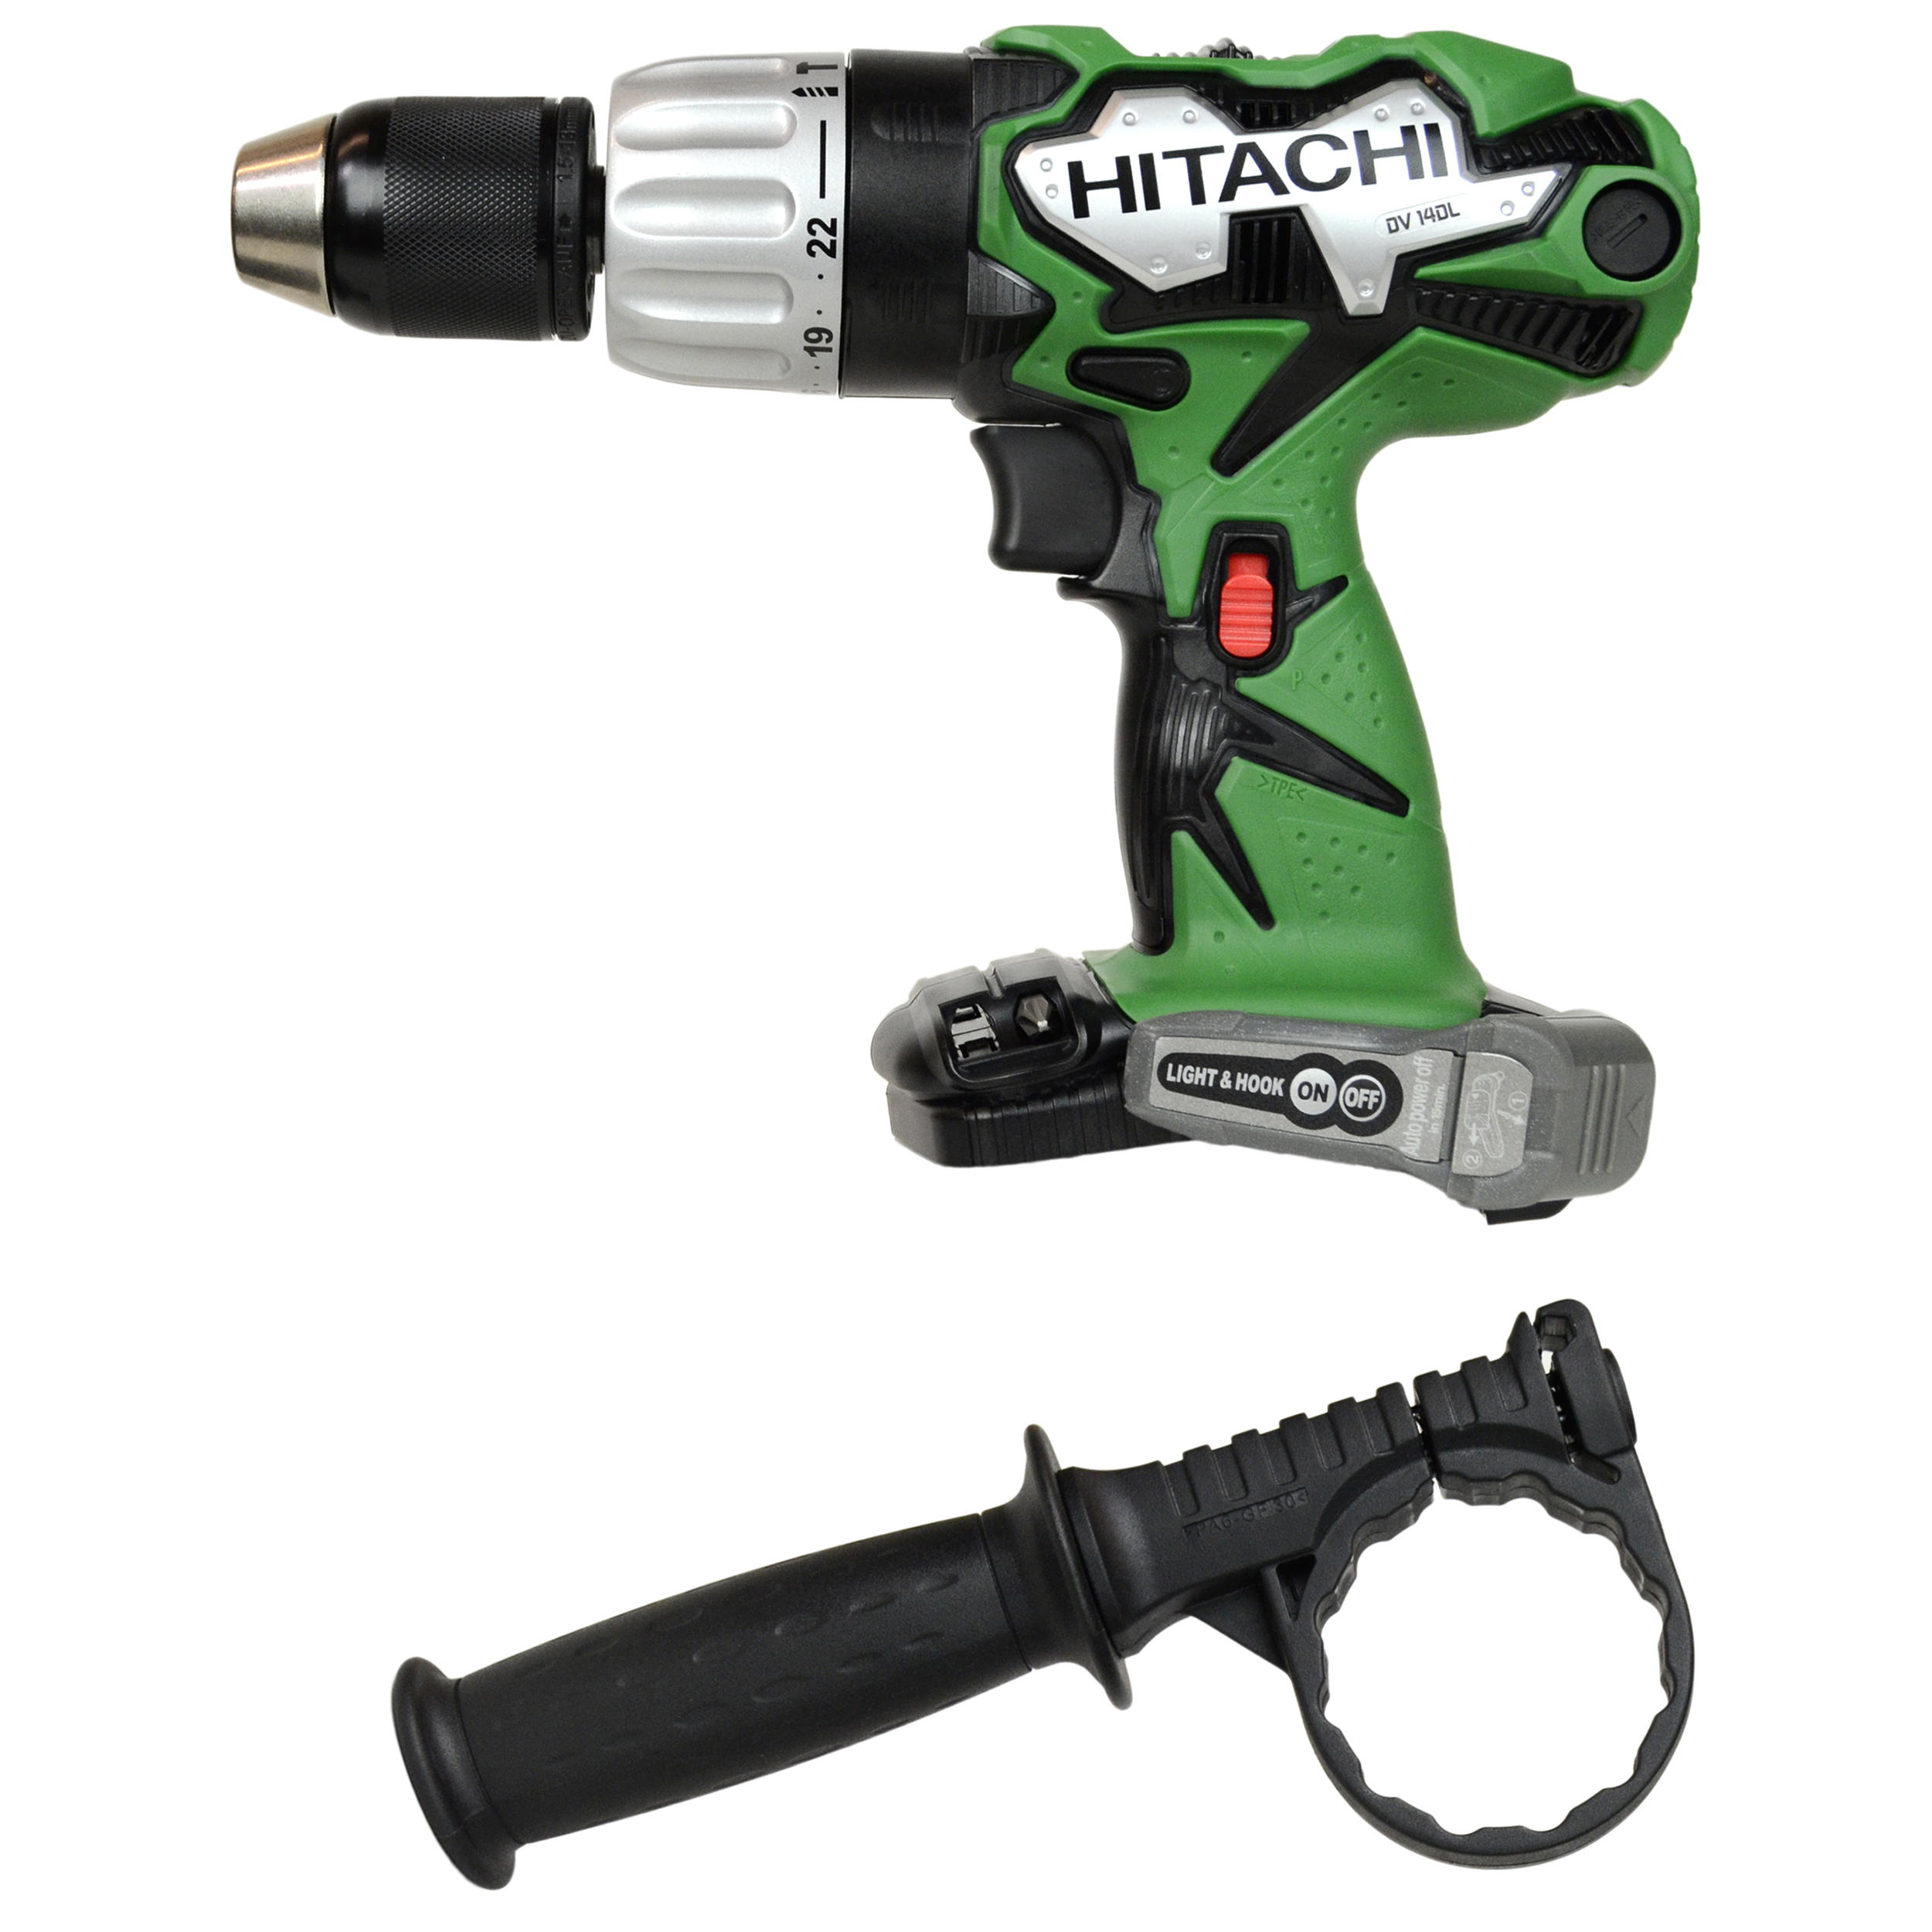 Hitachi DV14DL 14.4V Hammer Drill Driver with Side Handle, Tool Only